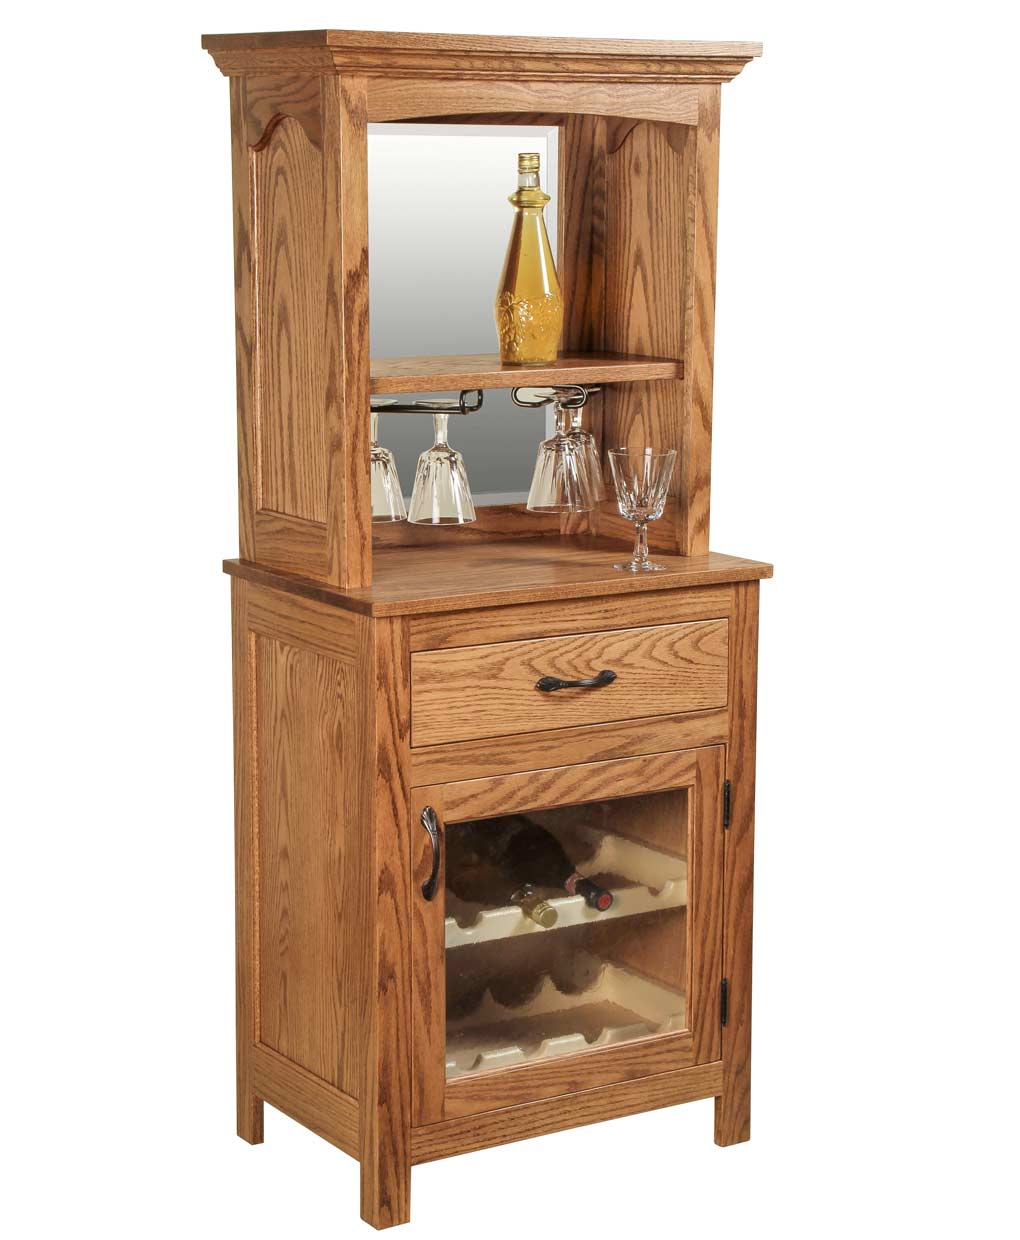 Solid oak wine rack amish direct furniture for Solid oak furniture